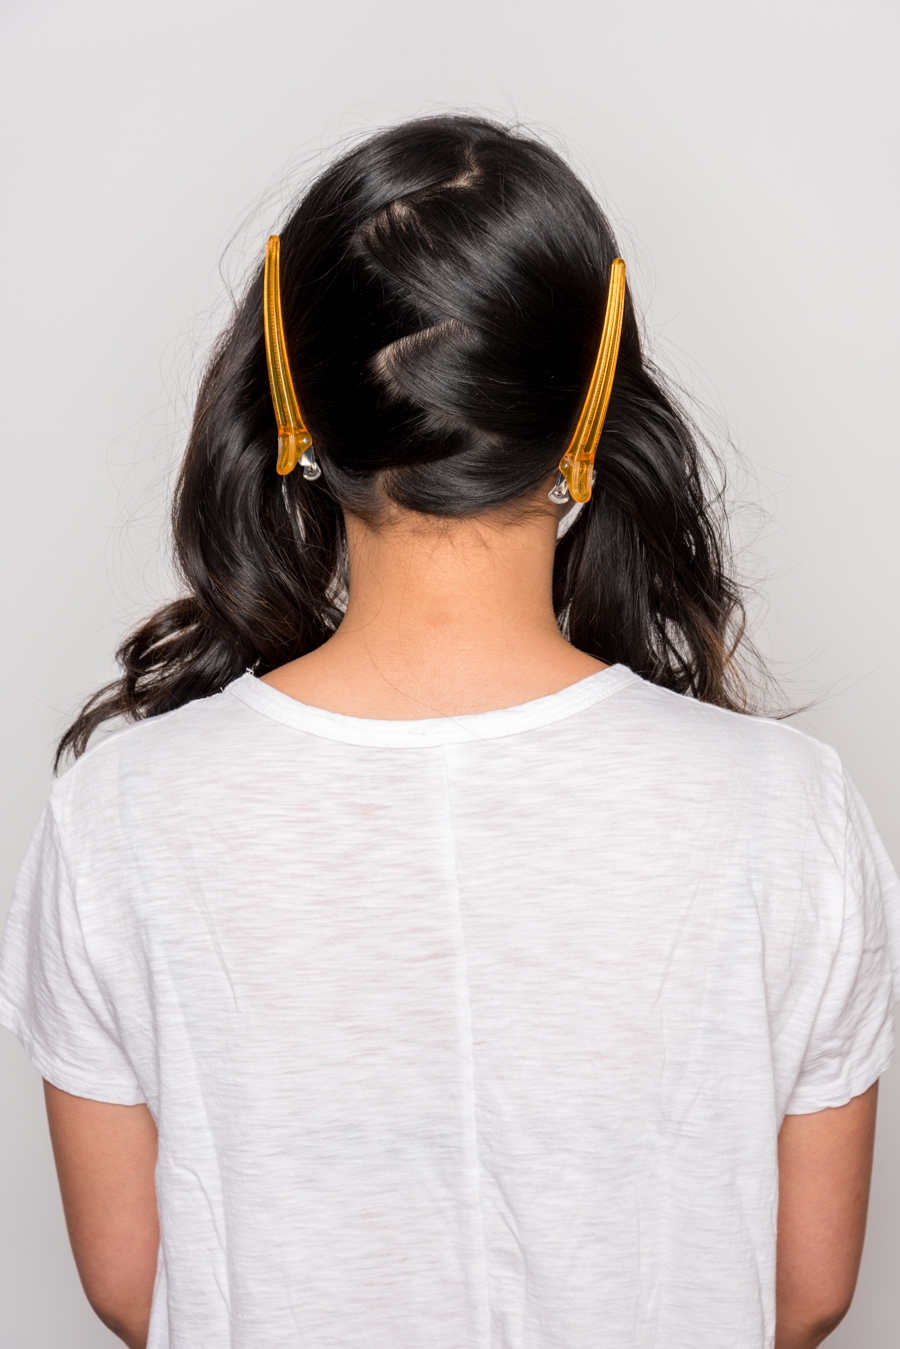 ROCK MAMA NYC LIFESTYLE BLOG-HOW TO USE SCARF FOR STYLISH SUMMER HAIR